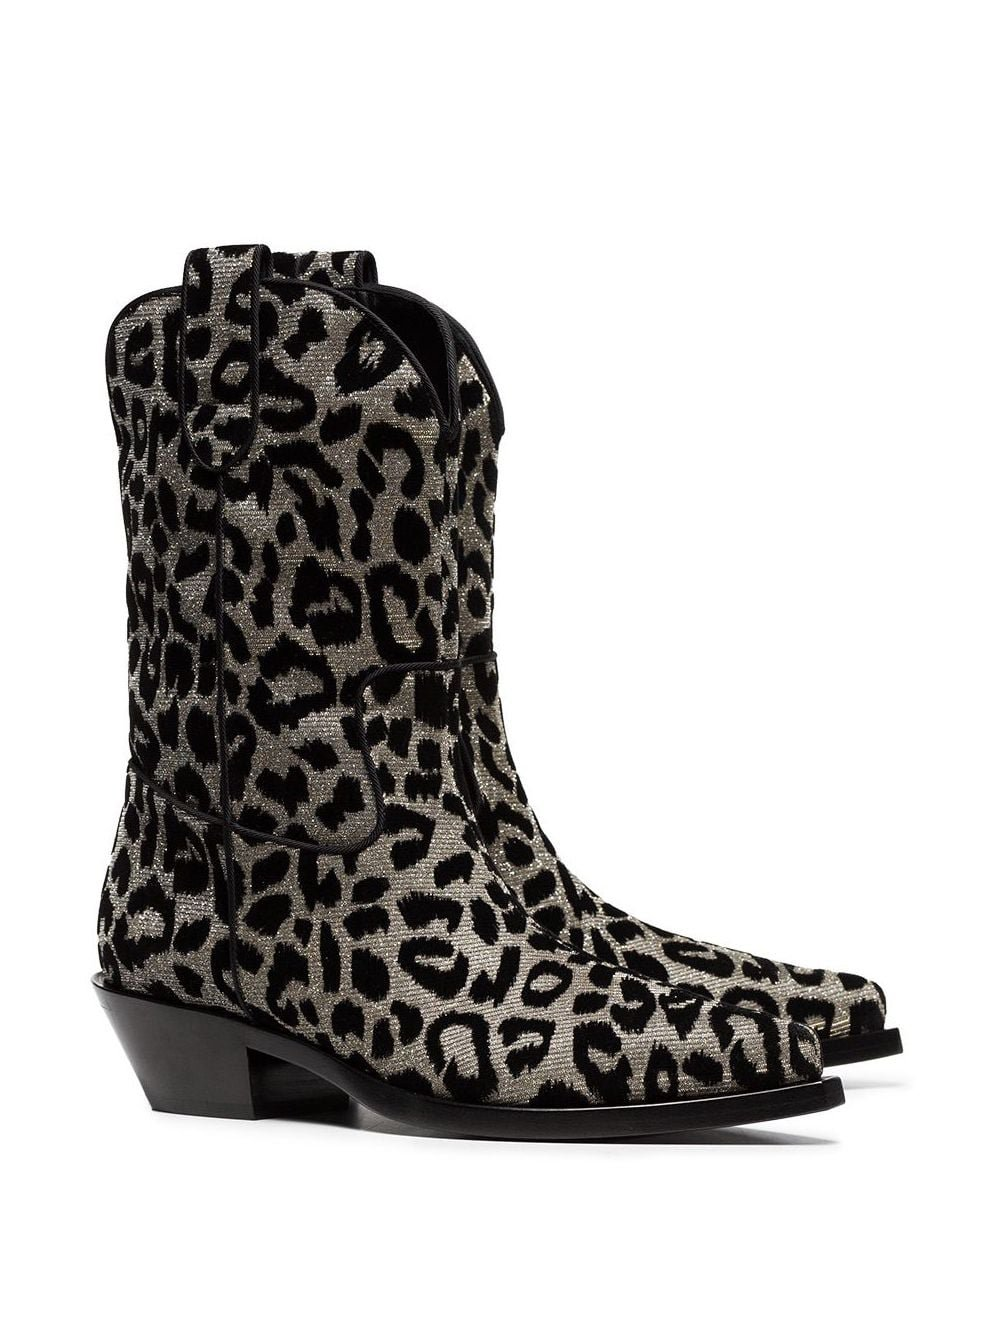 Dolce & Gabbana Texan 40 leopard cowboy boots $1,291 - Buy Online - Mobile Friendly, Fast Delivery, Price